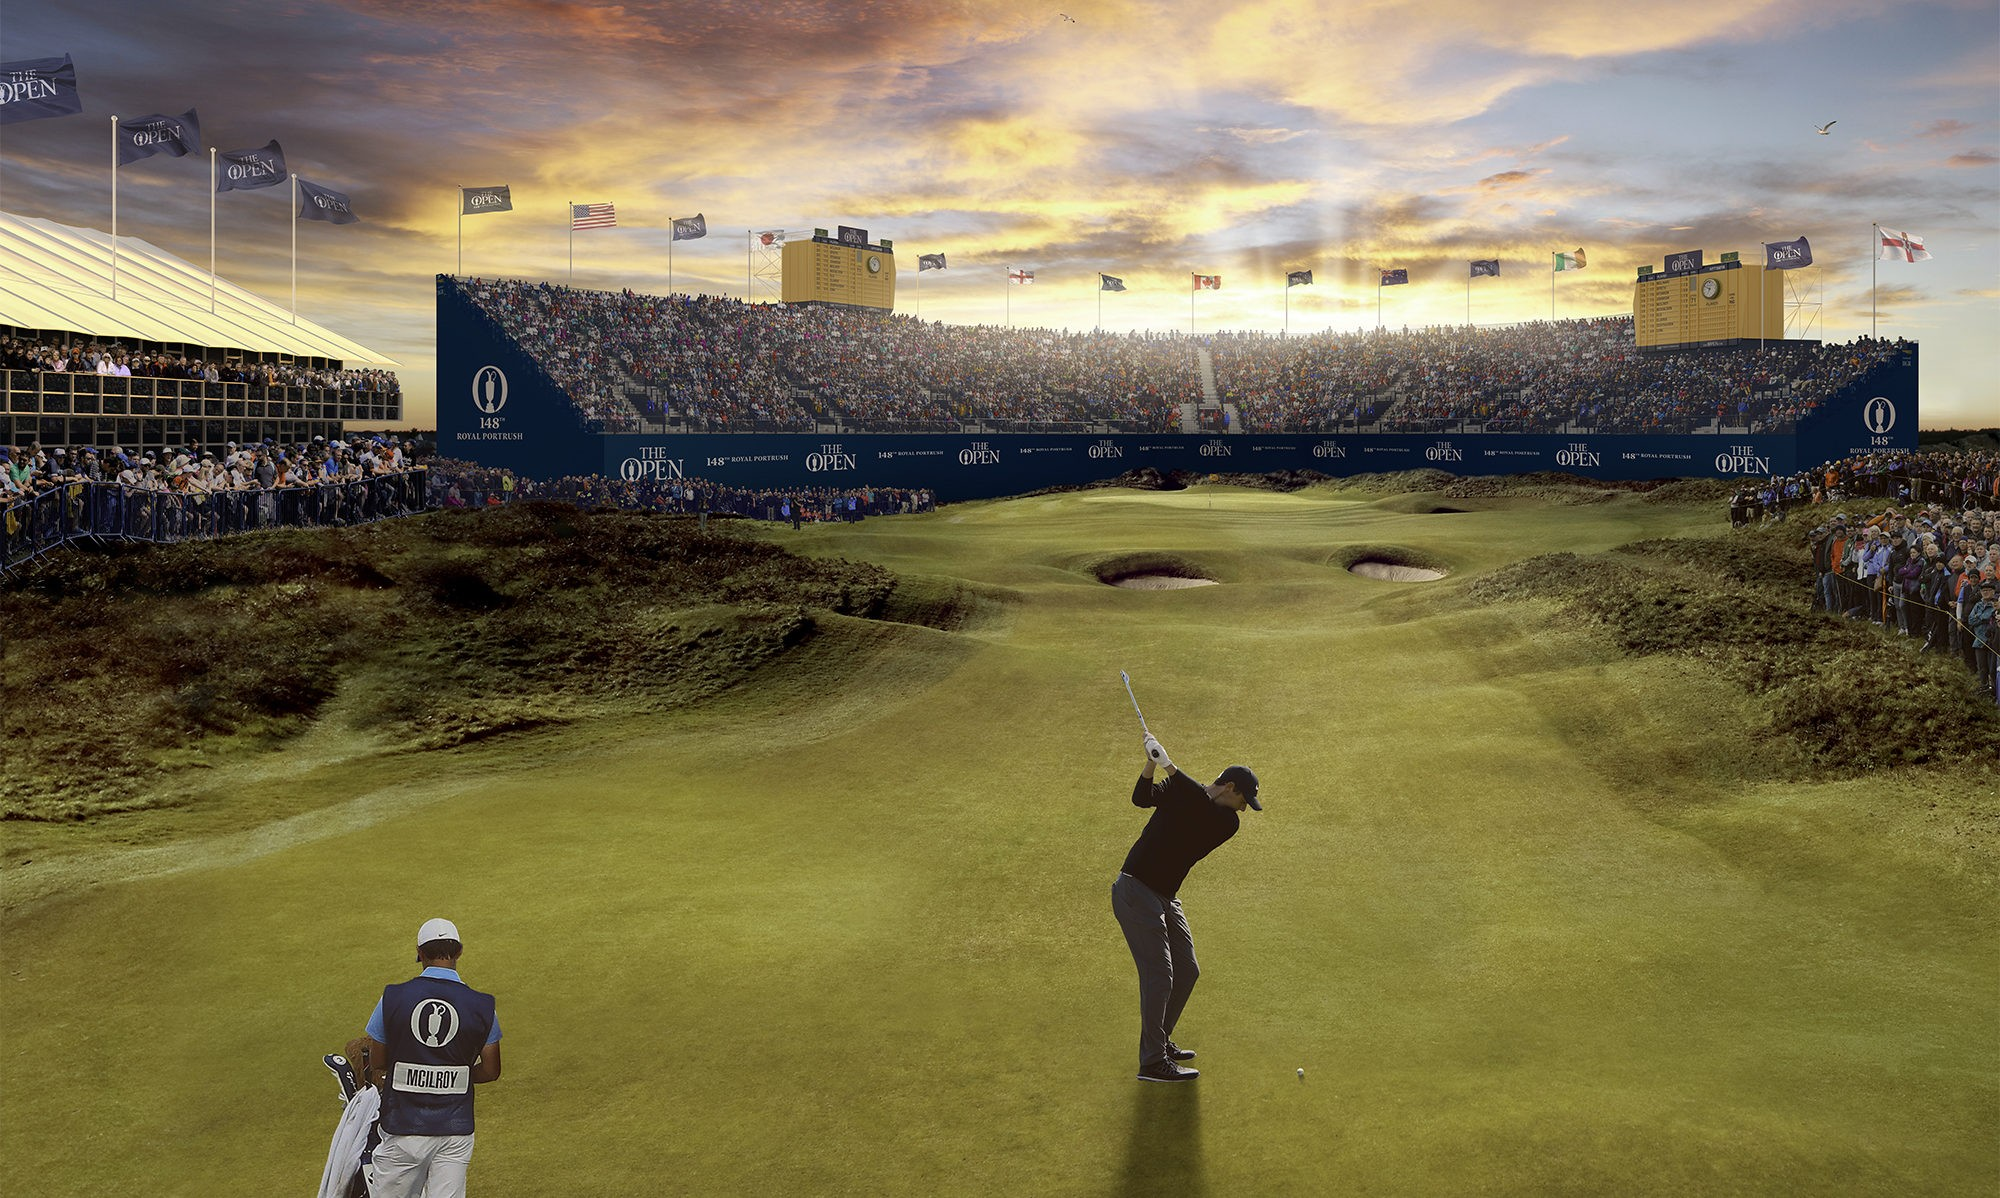 The 148th Open Royal Portrush